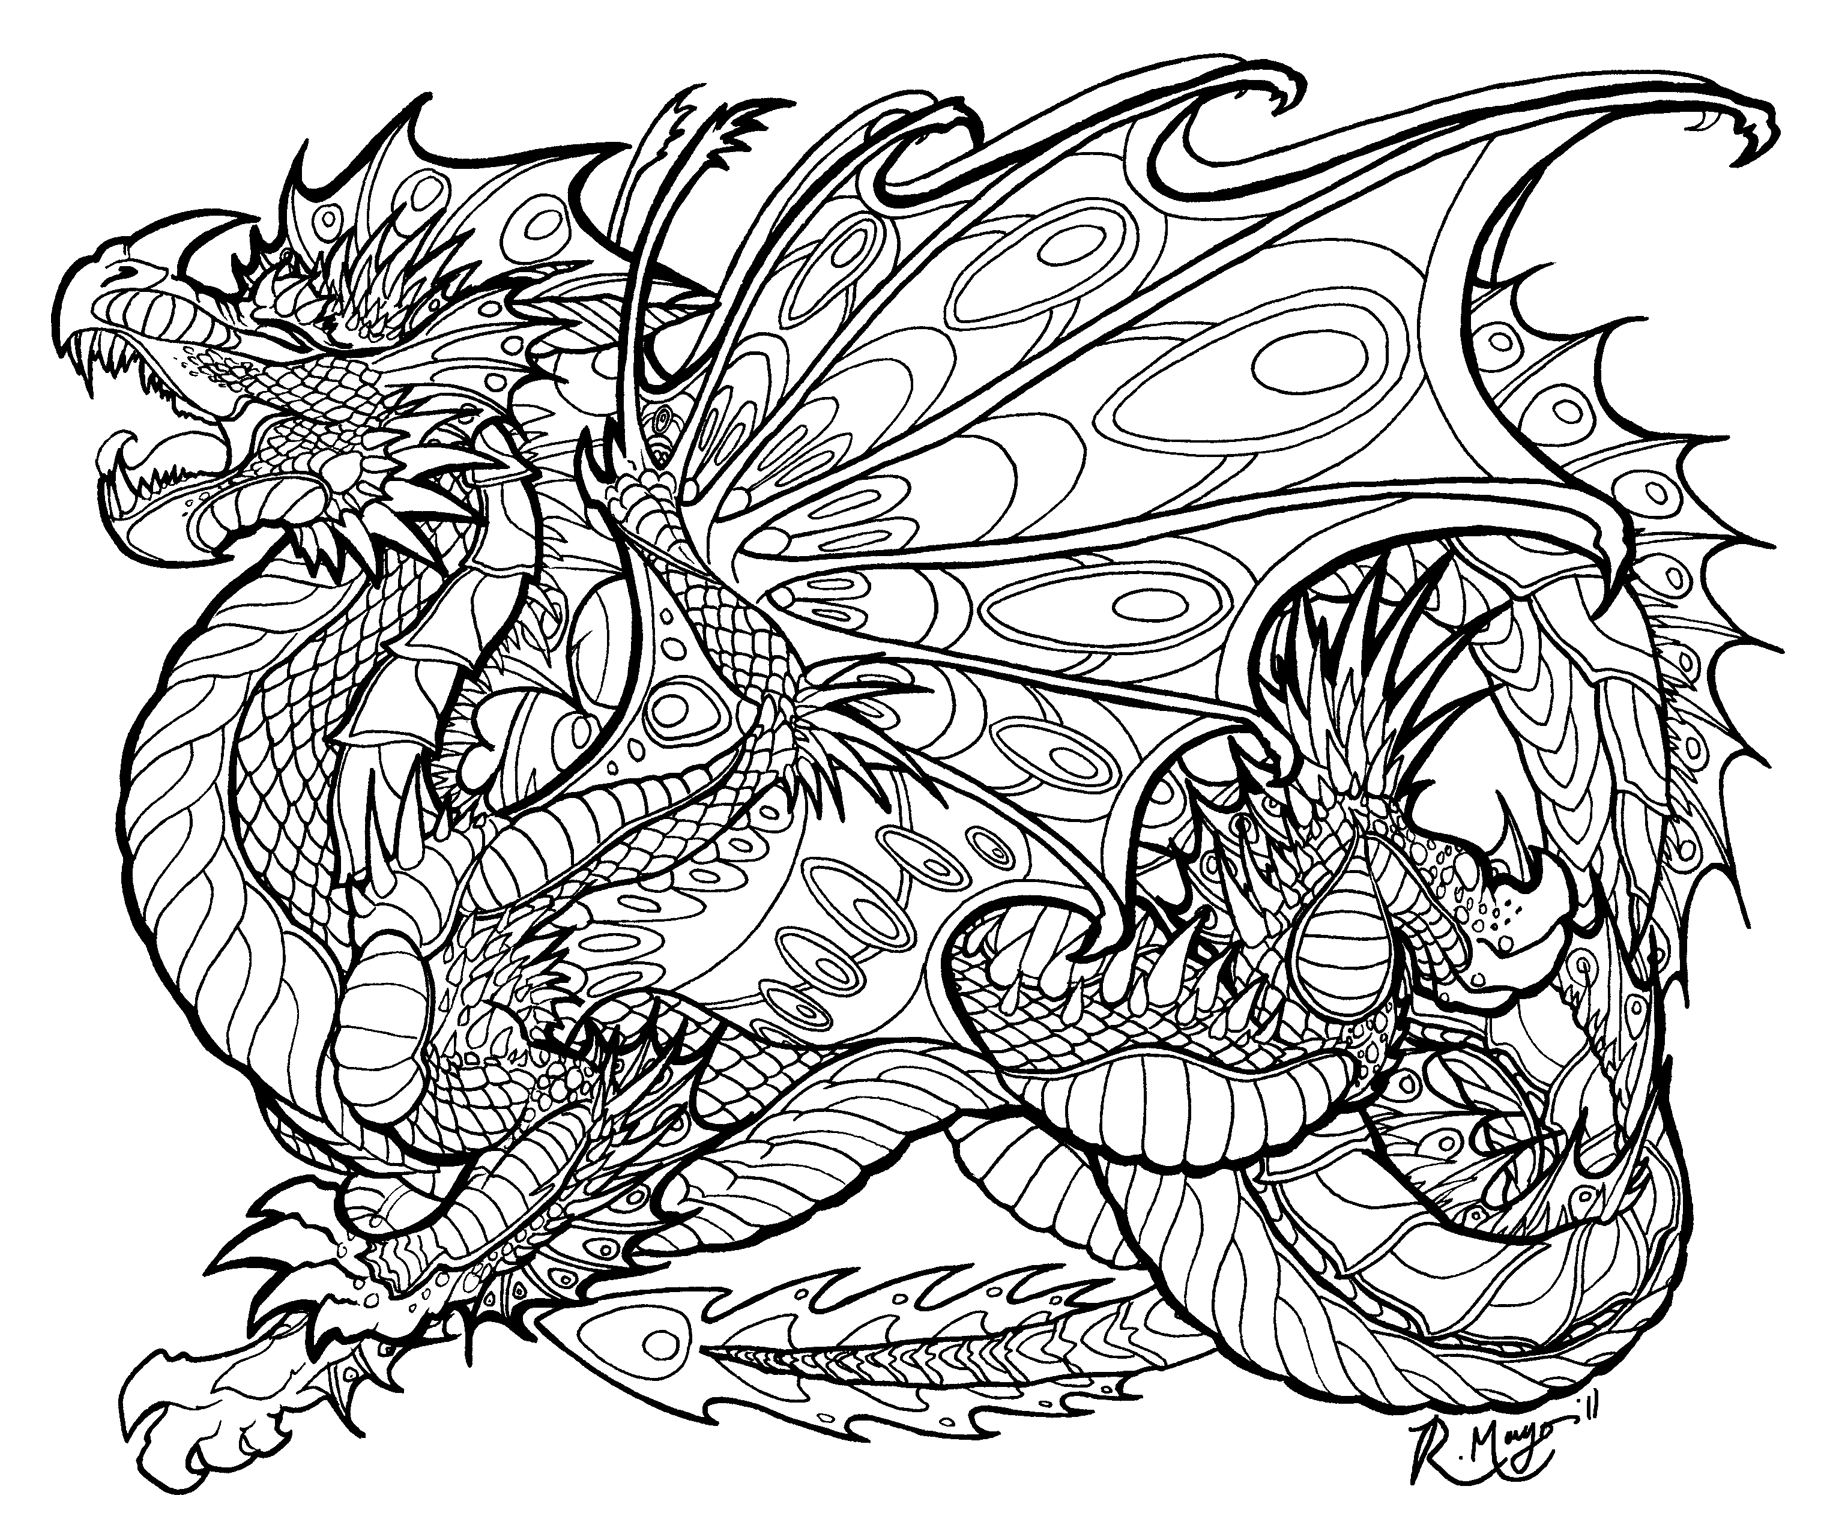 dragon coloring page coloring pages for adults difficult dragons at getdrawings dragon page coloring